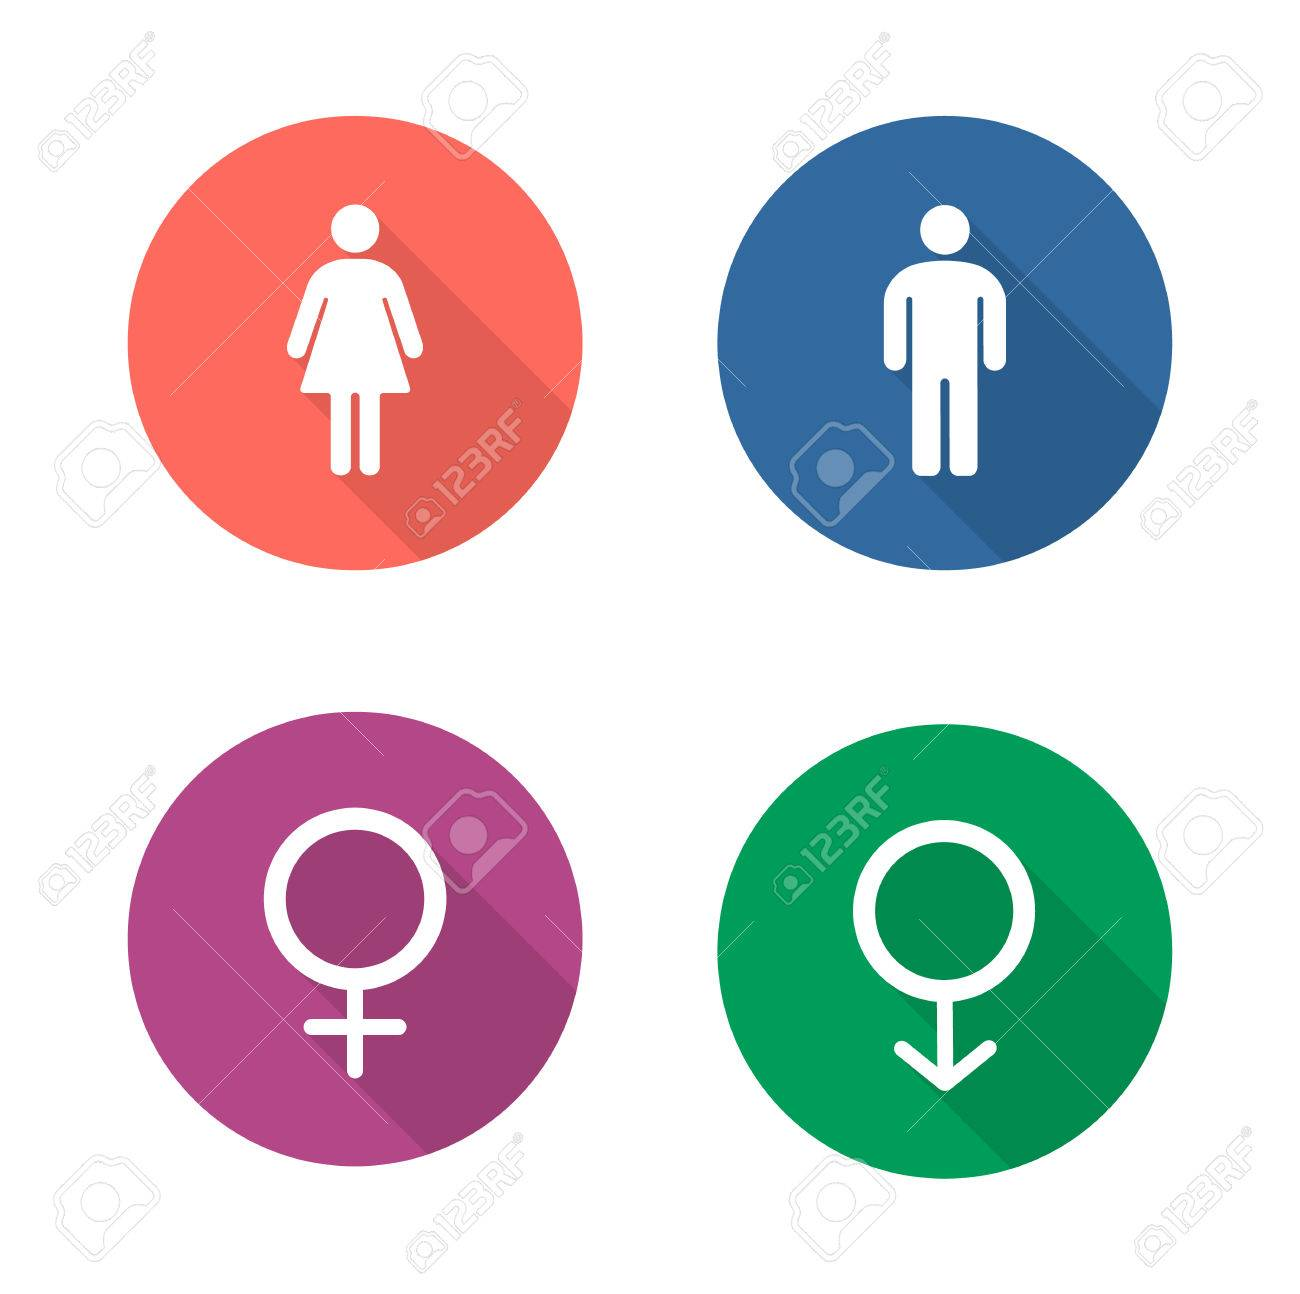 Gender Symbol Clipart